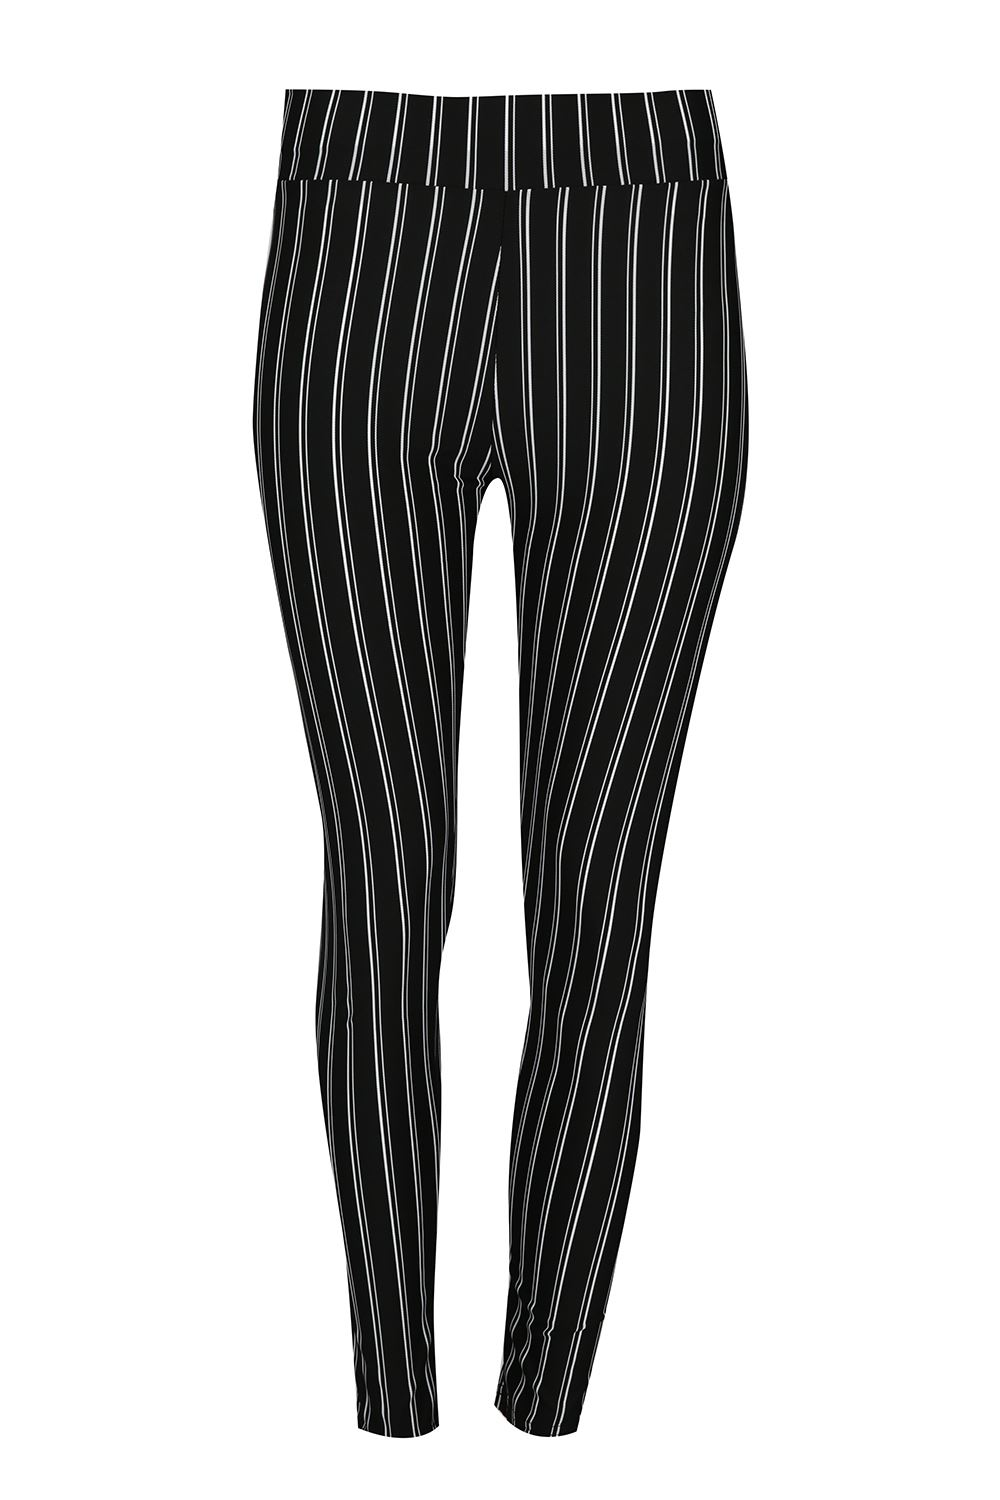 Leggings. Coordinate your laidback look with a versatile pair of leggings. From printed and carpri styles to active and faux leather styles, you'll find the perfect look to match all the tops in your wardrobe rotation.